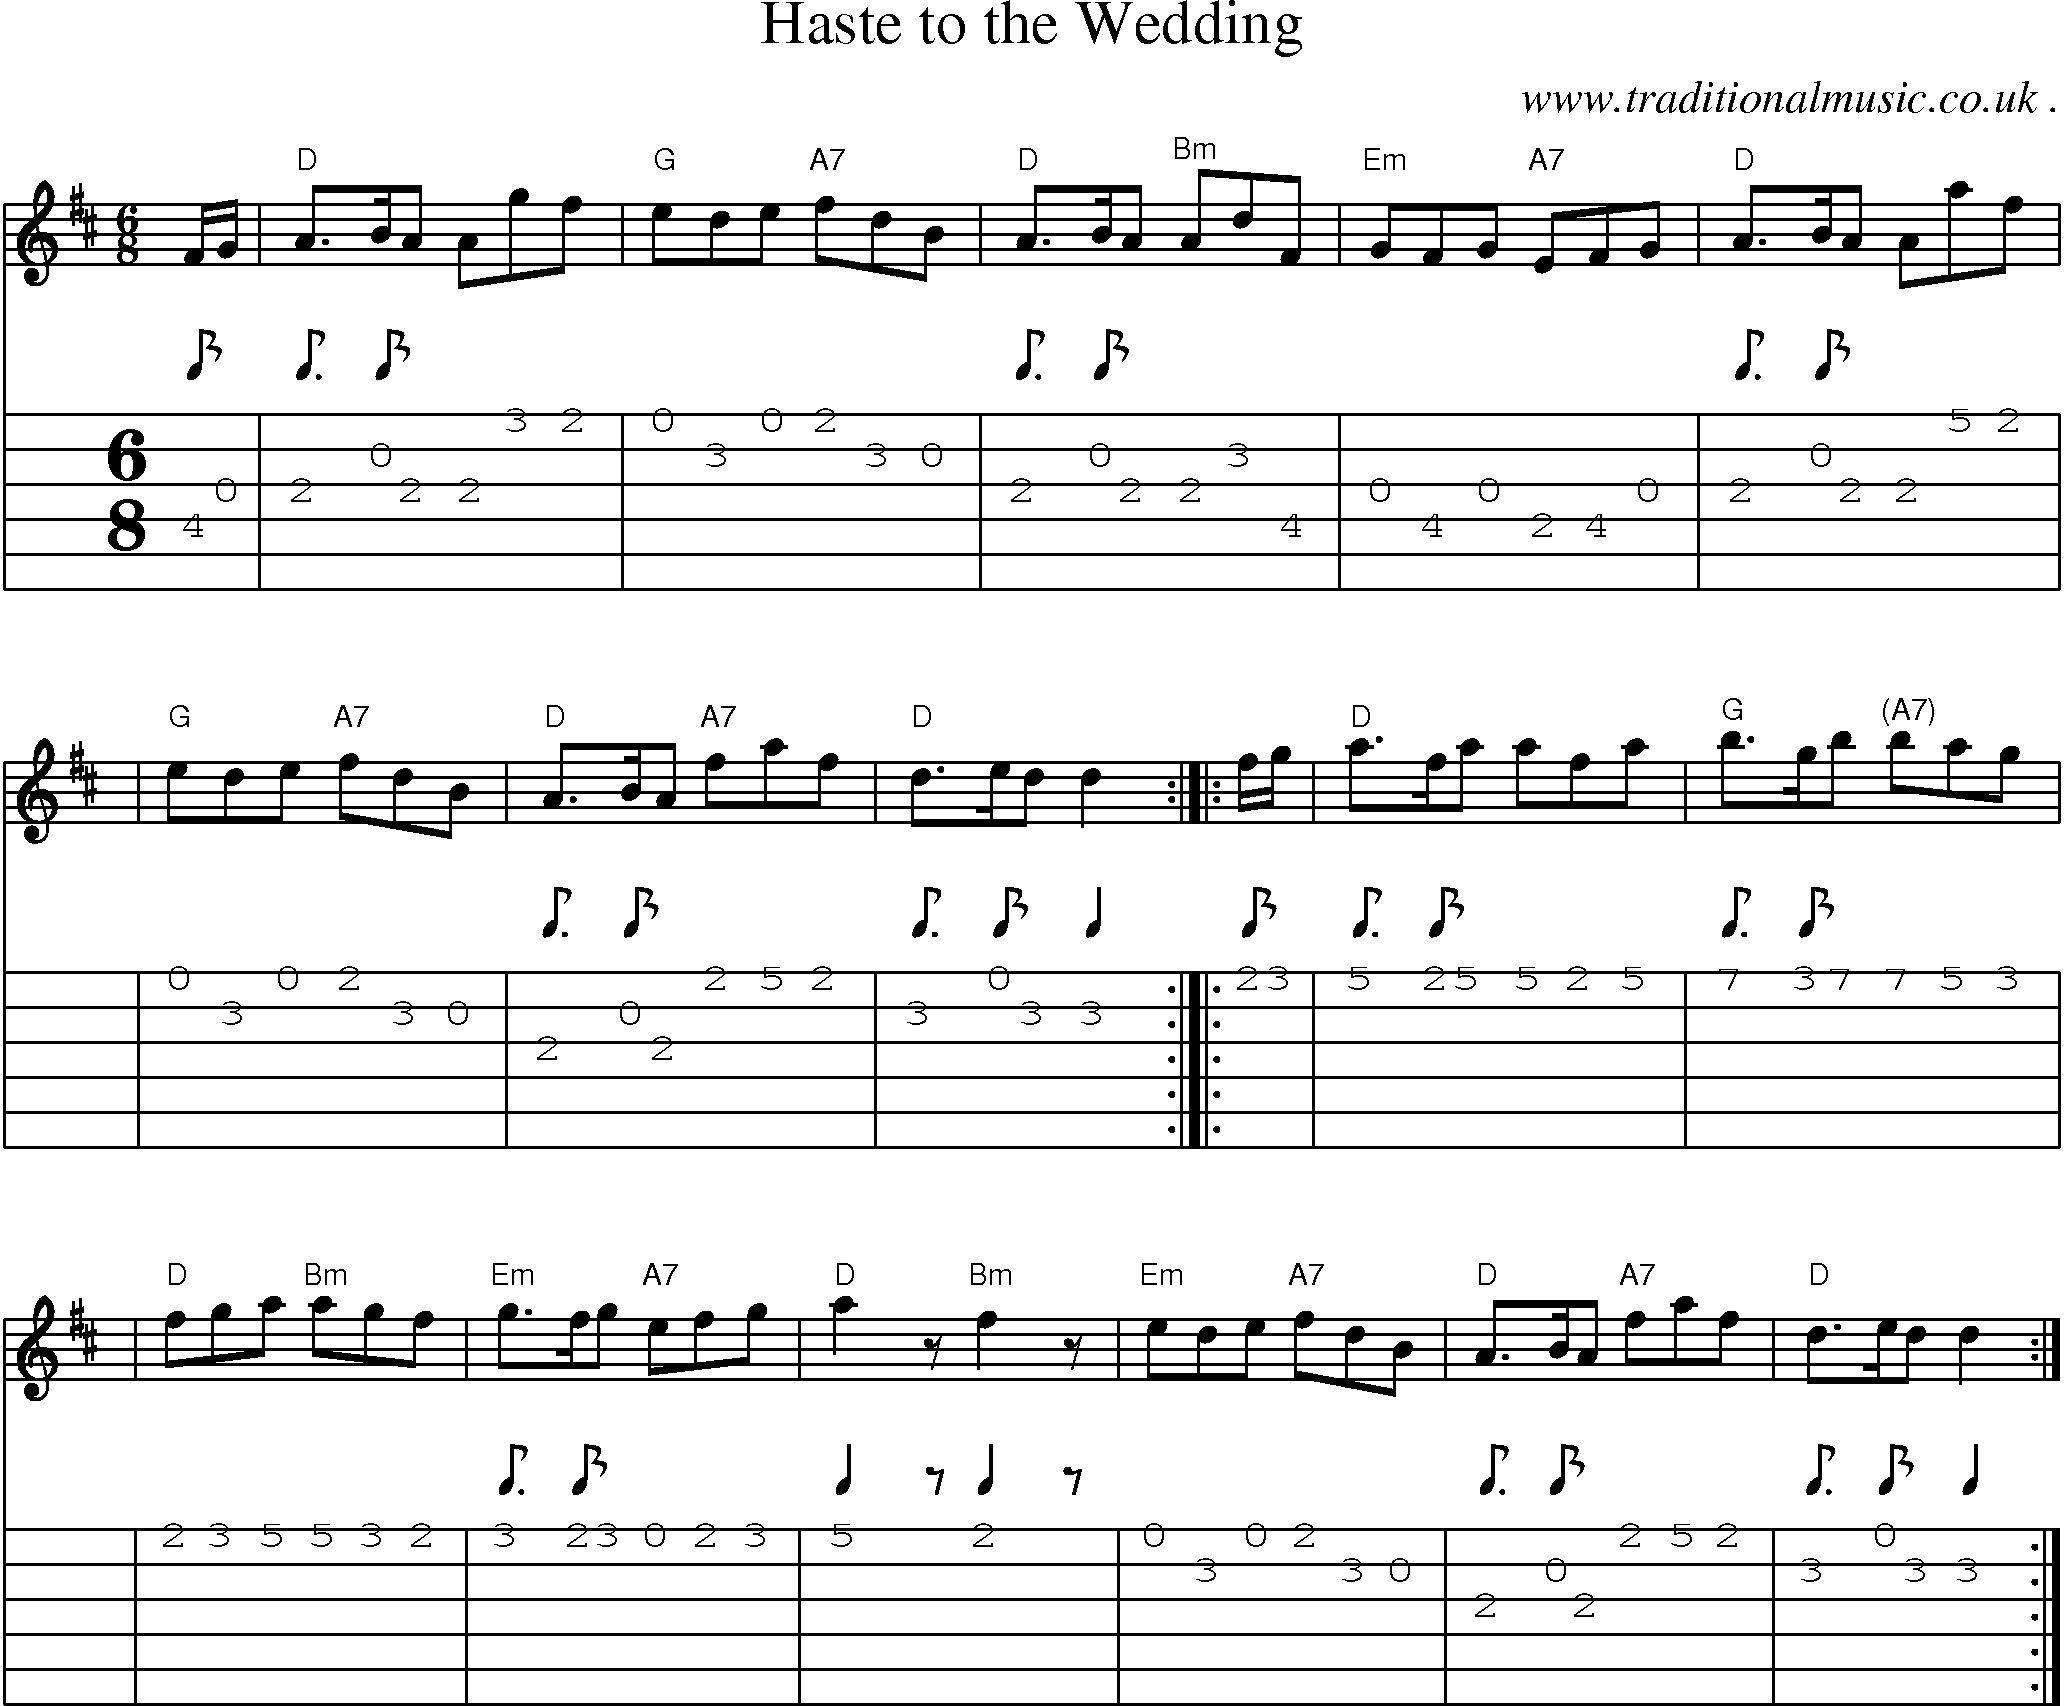 White Wedding Chords.Scottish Tune Score Guitar Chords Tabs Haste To The